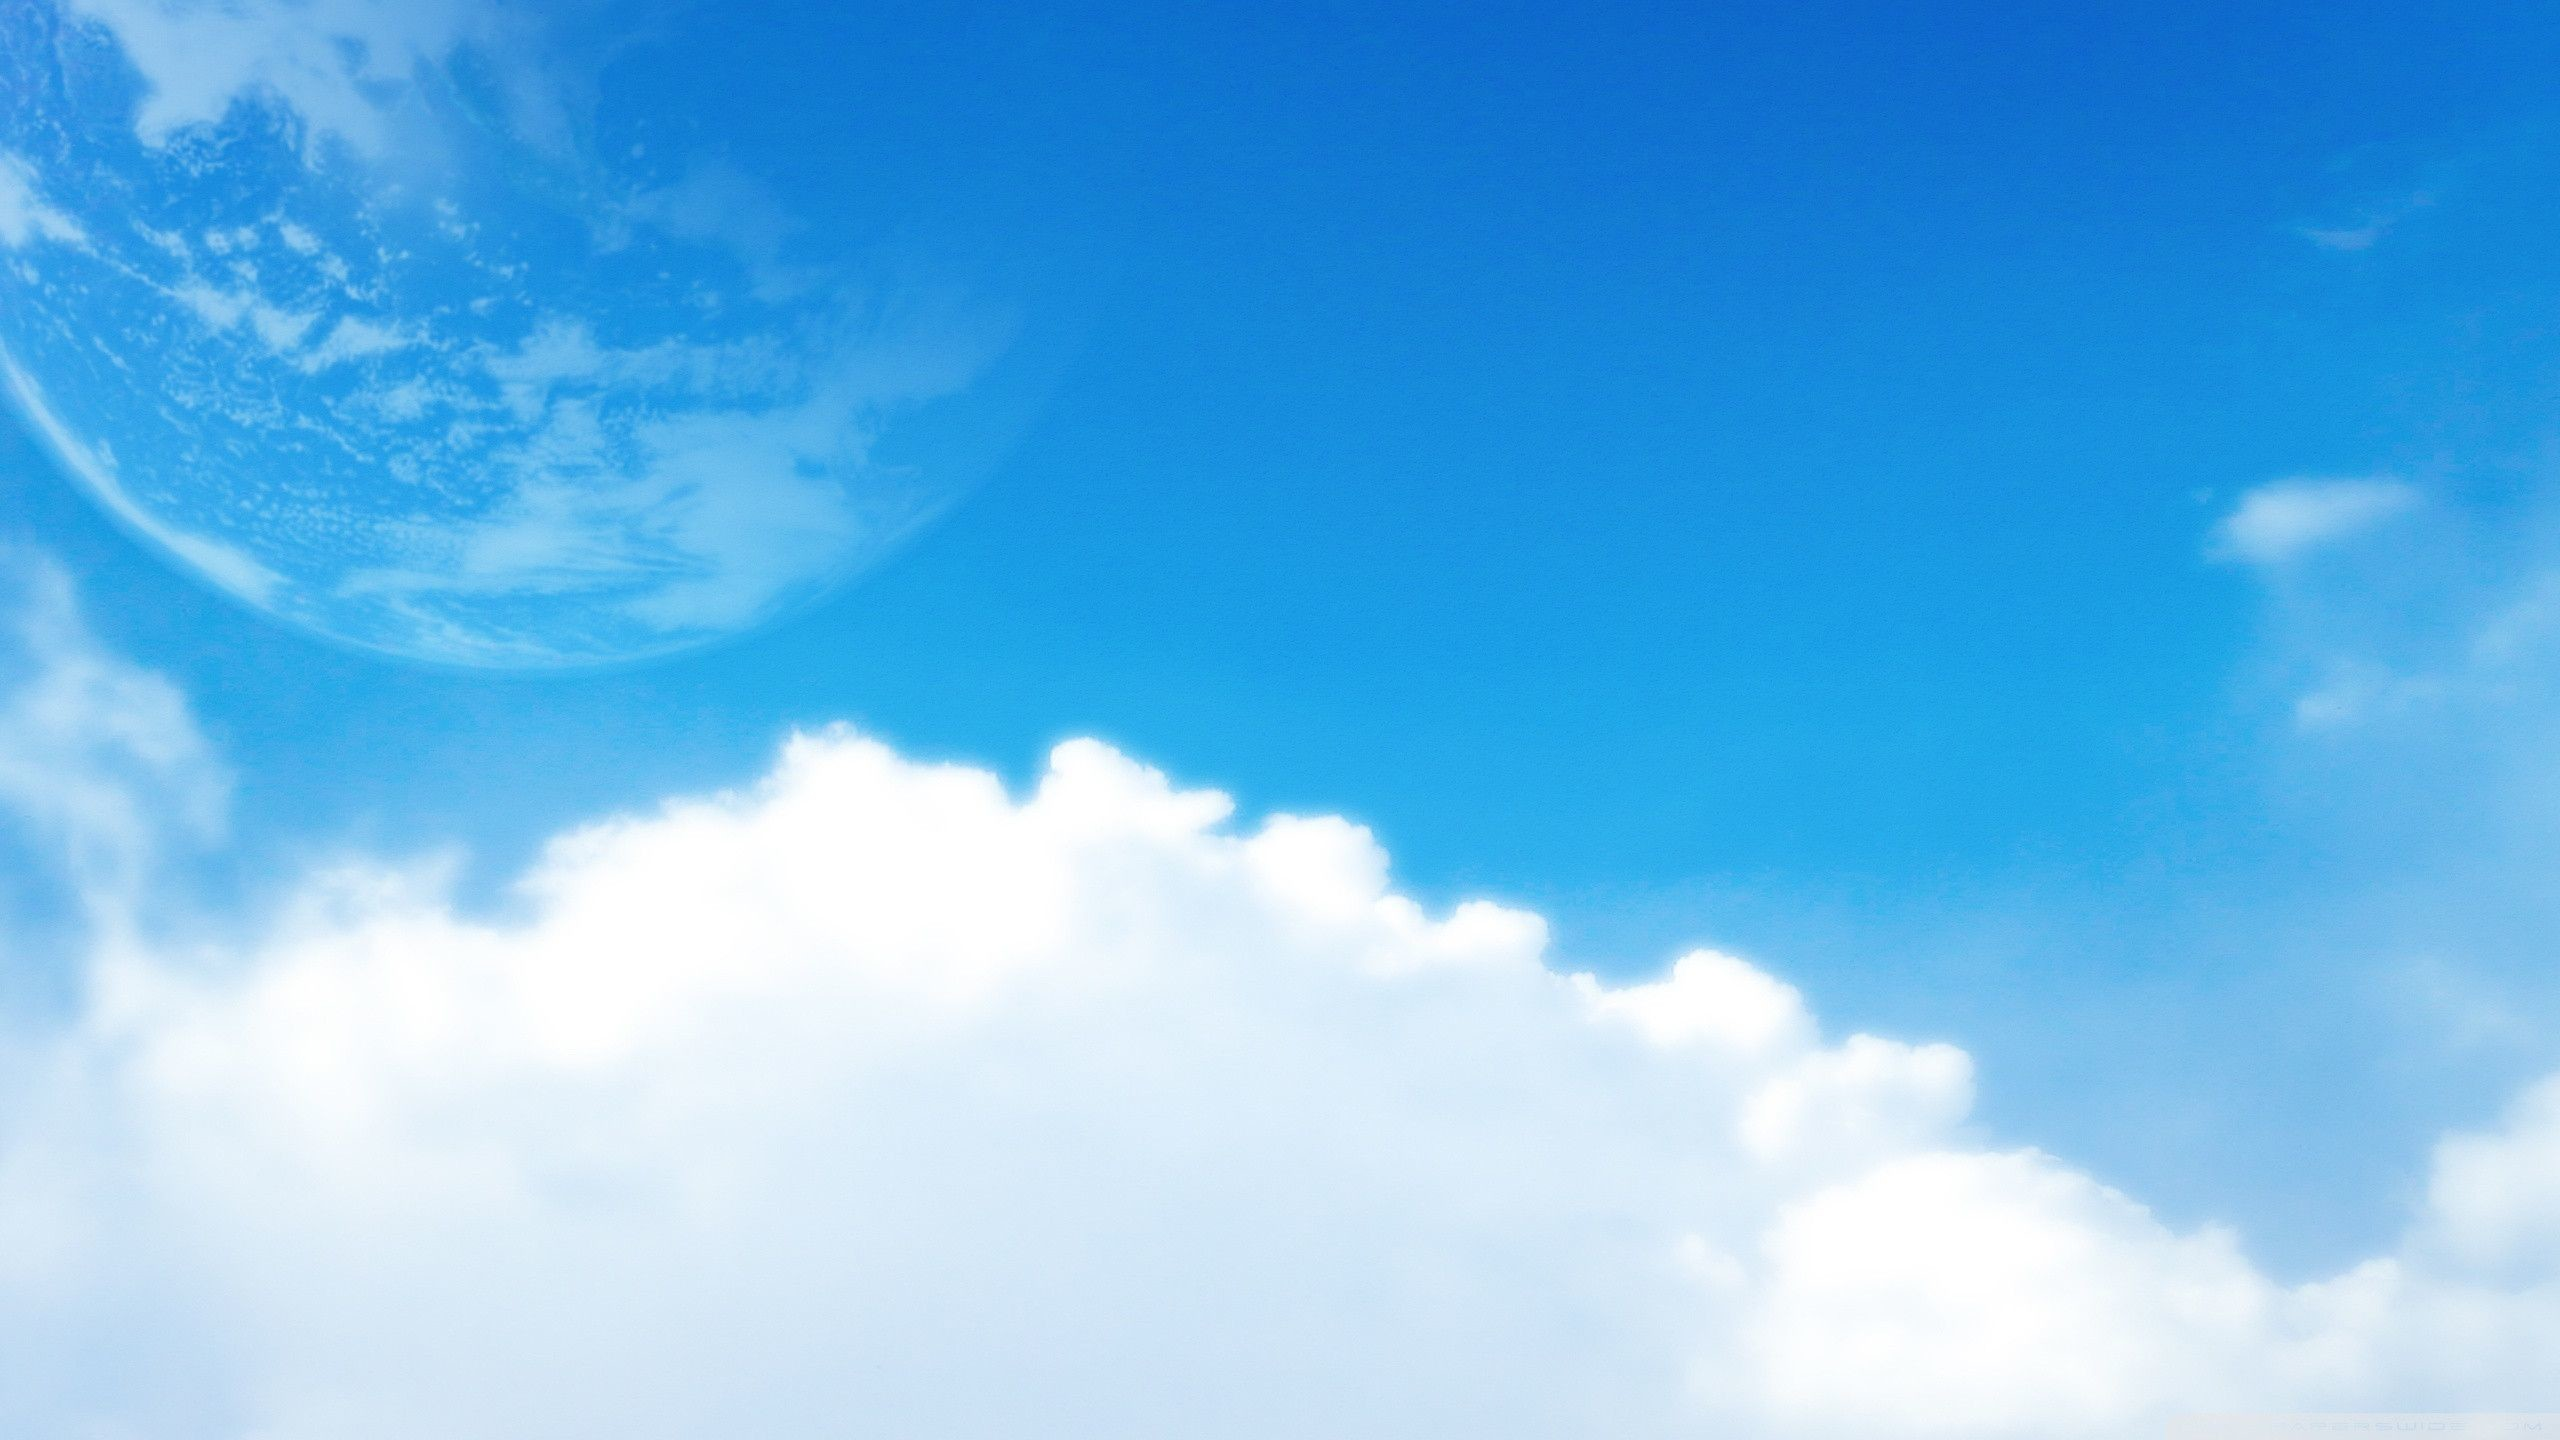 2560x1440 Blue Sky Wallpapers - Wallpaper Cave